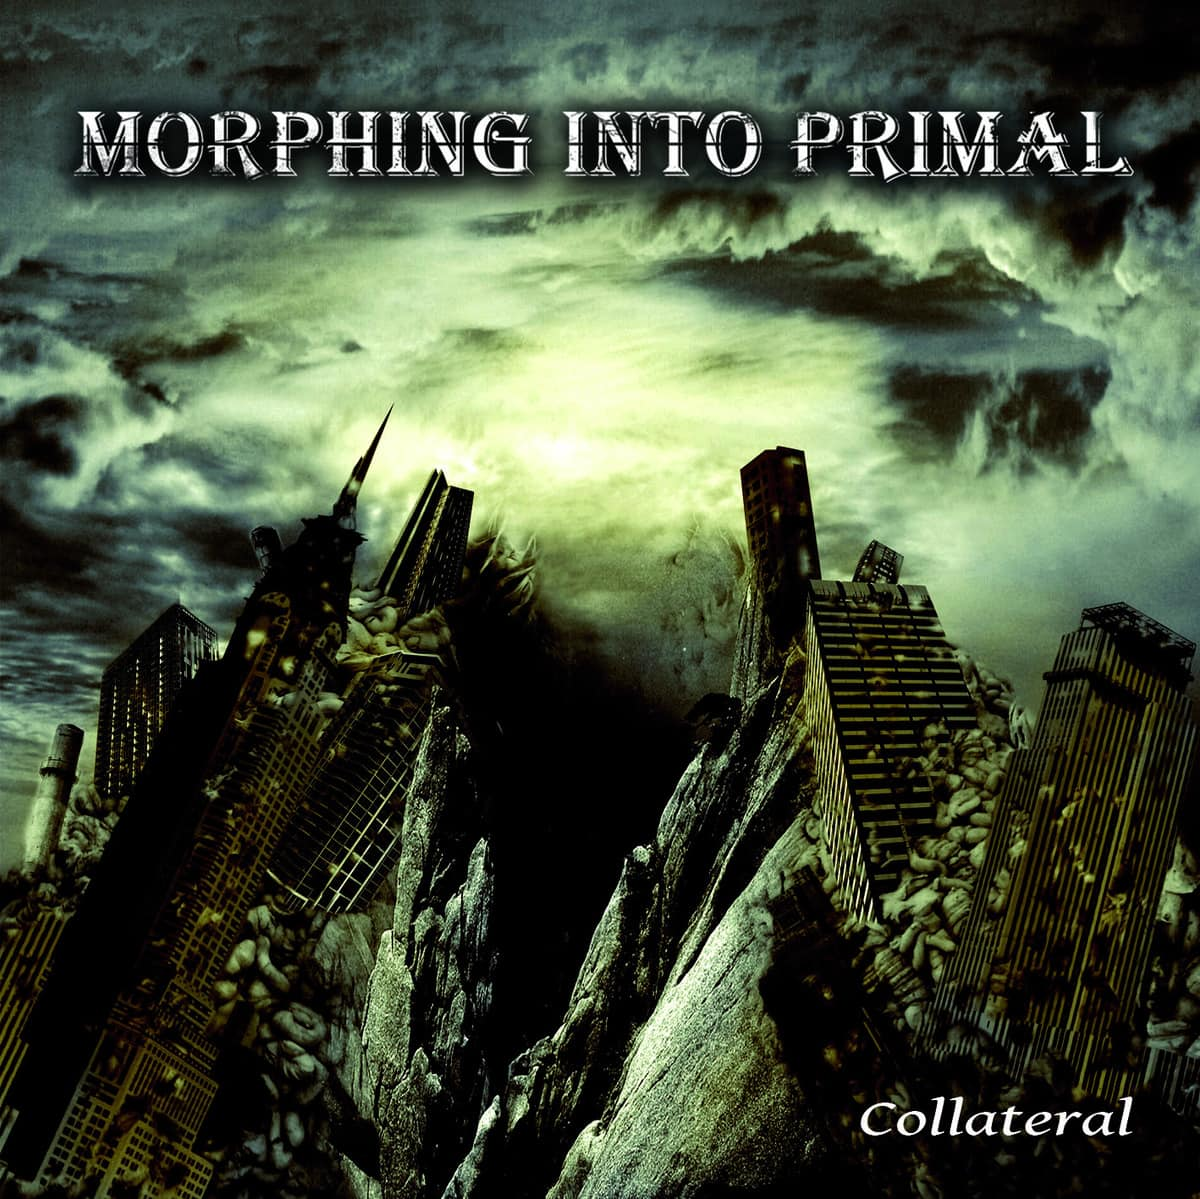 MORPHING INTO PRIMAL – Collateral, 2014